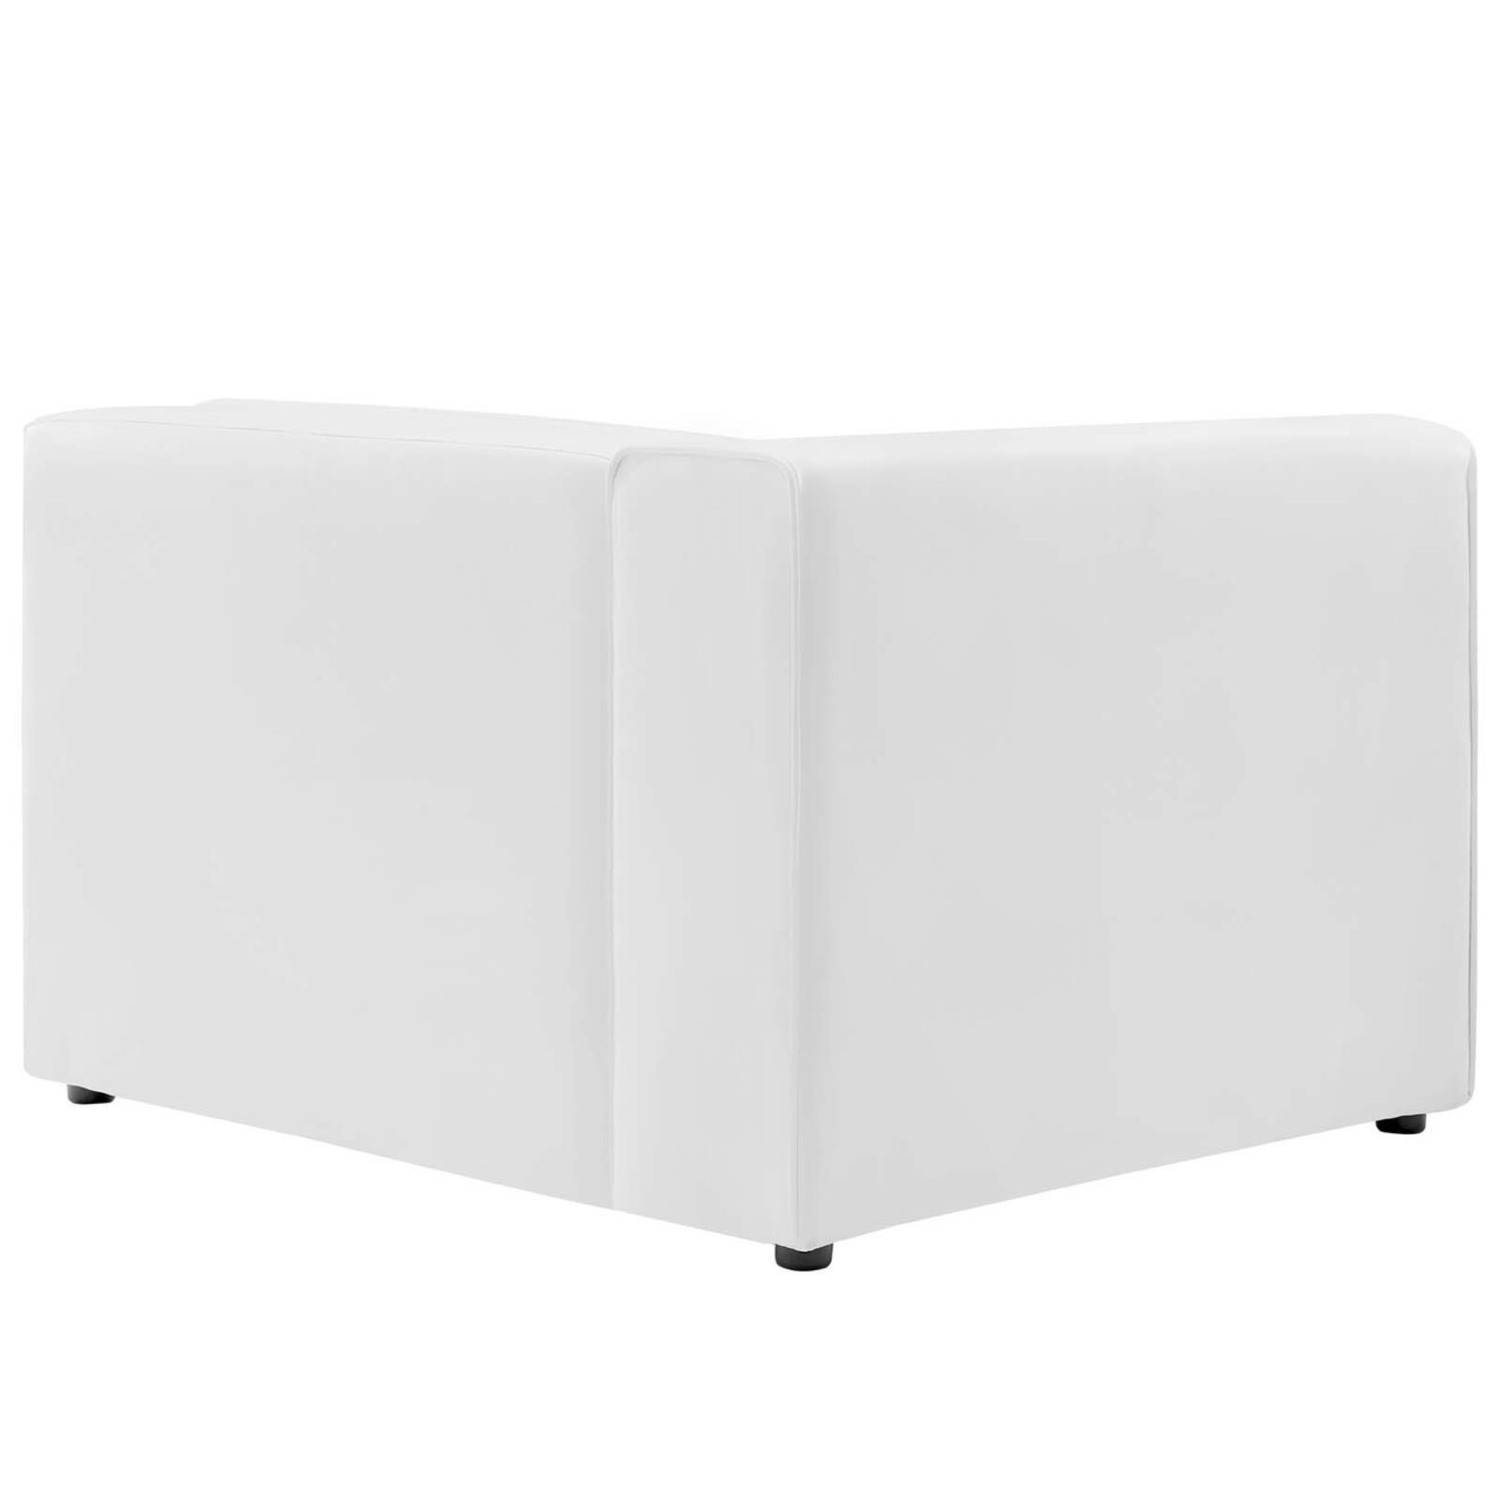 2-Piece Sectional Sofa In White Leather Finish - image-3